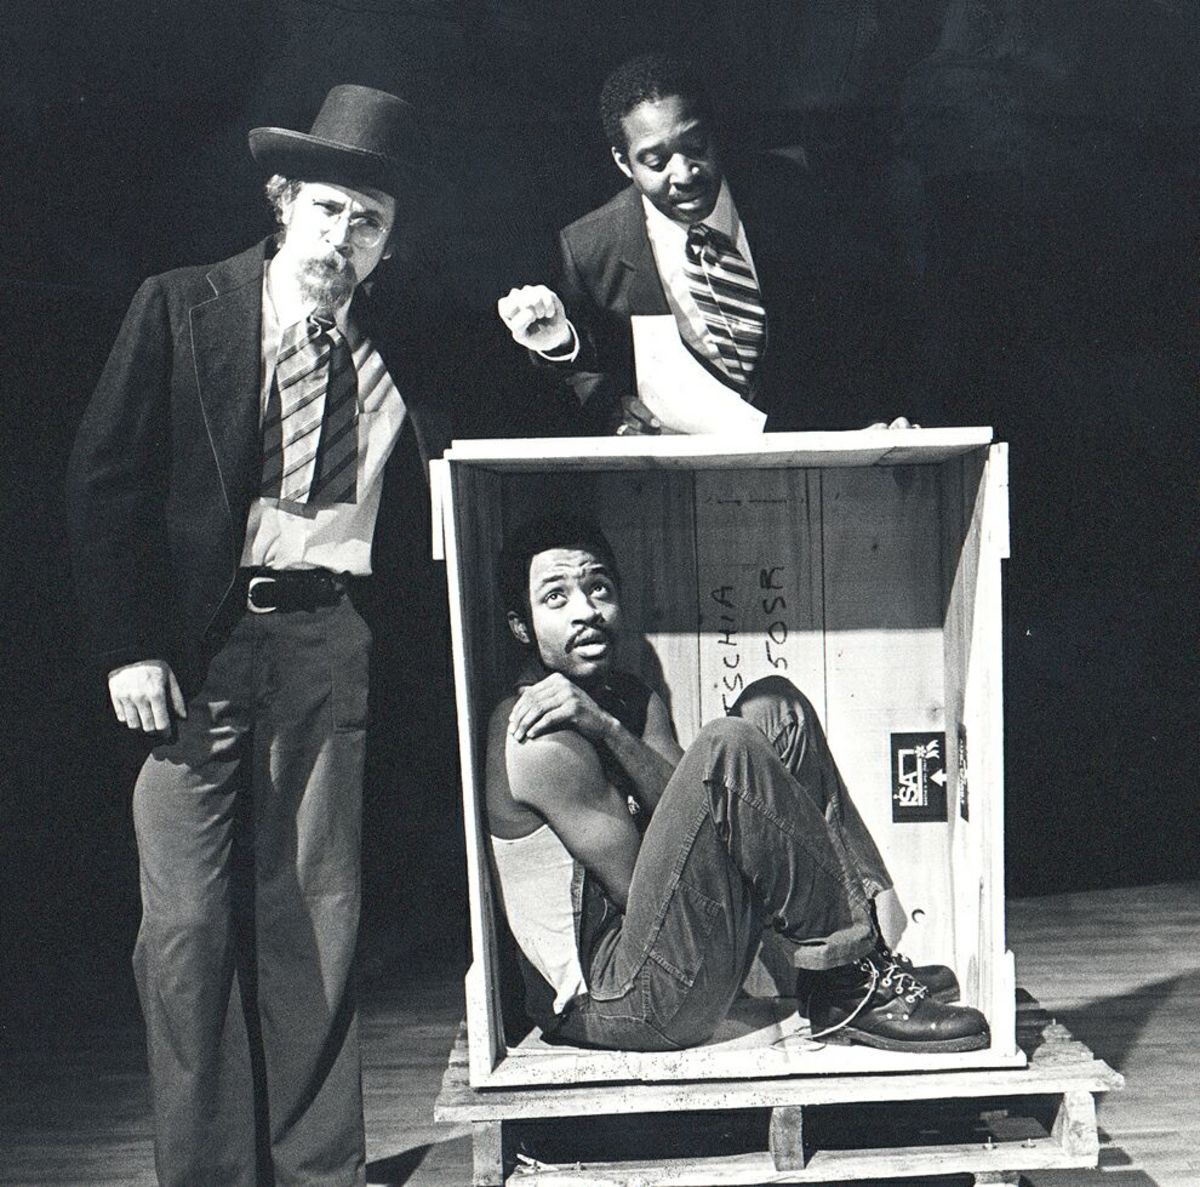 Henry in his box as depicted in a one-act play